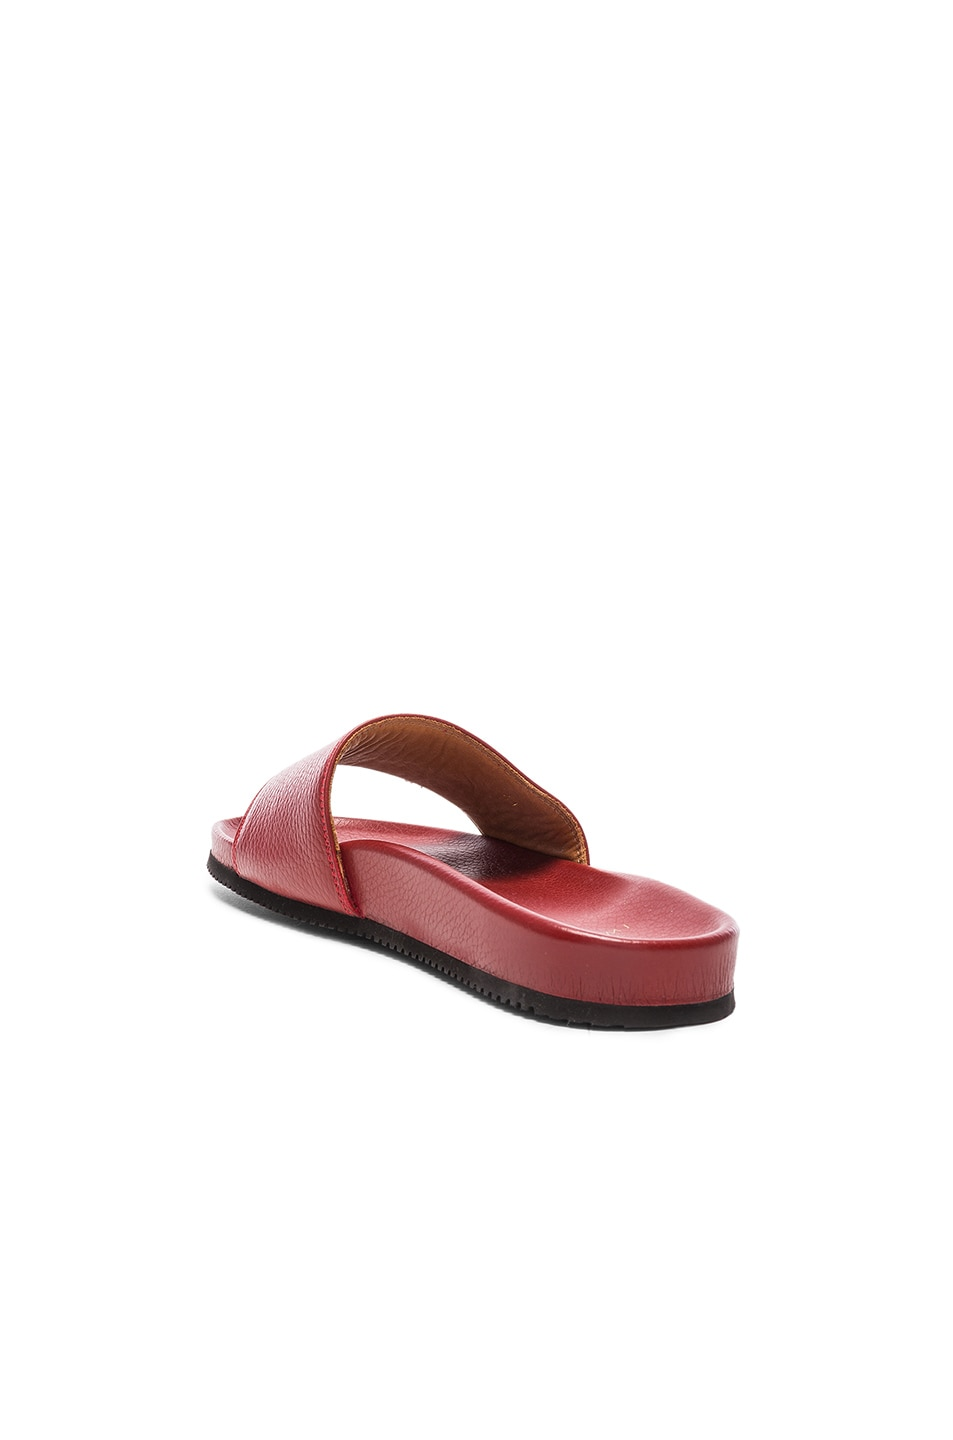 Image 3 of Buscemi Classic Leather Slide Sandals in Red